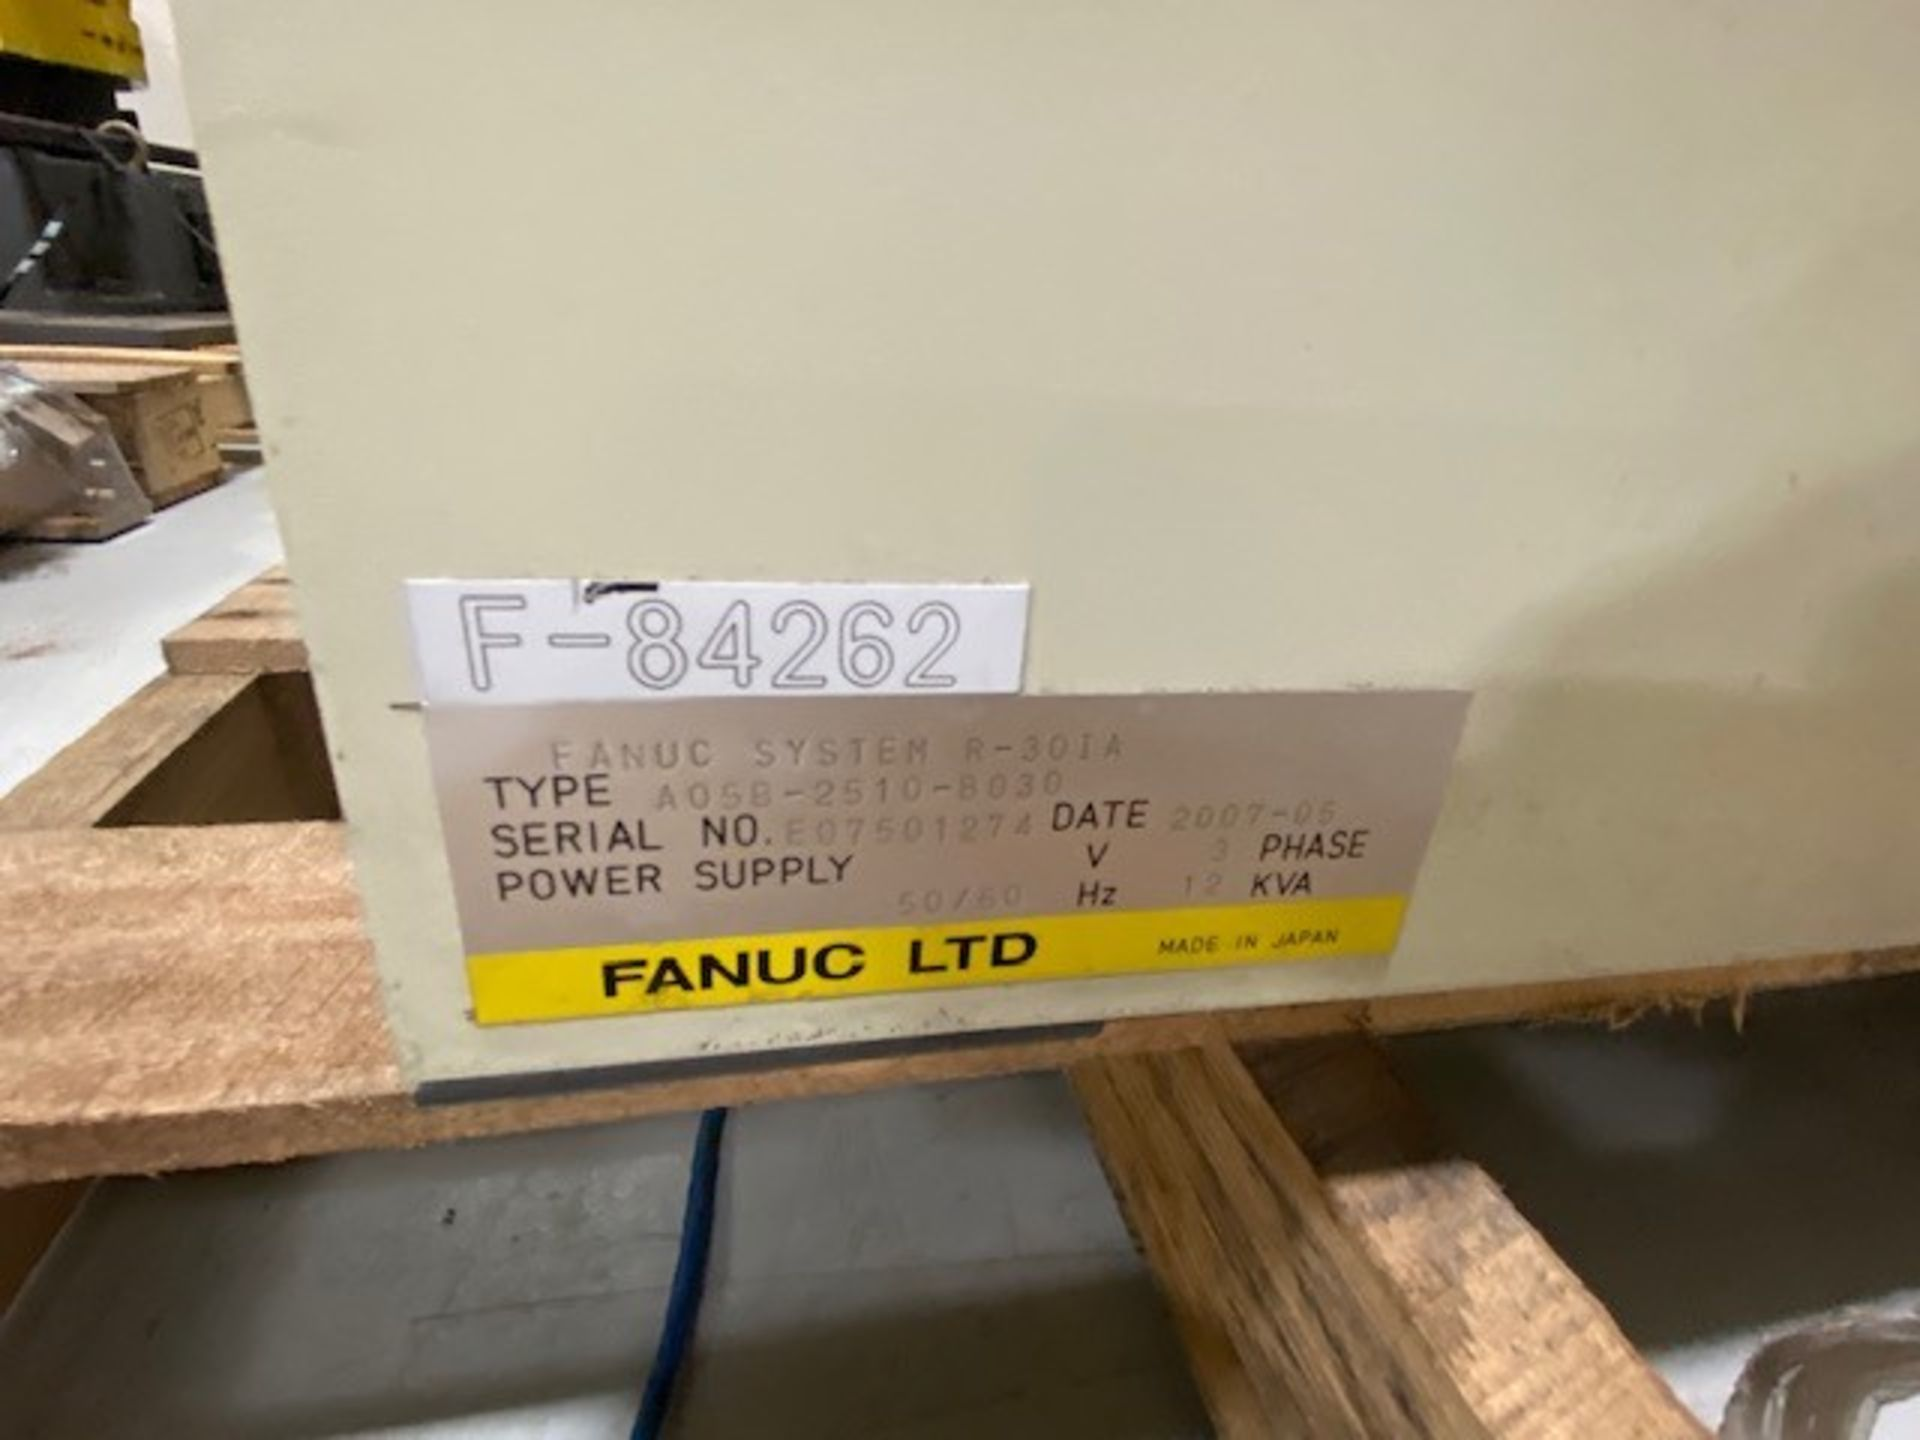 FANUC R-2000iB/165F WITH R-30iA CONTROLS, TEACH PENDANT & CABLES, SN 84262, ONLY 624 HOURS - Image 6 of 7